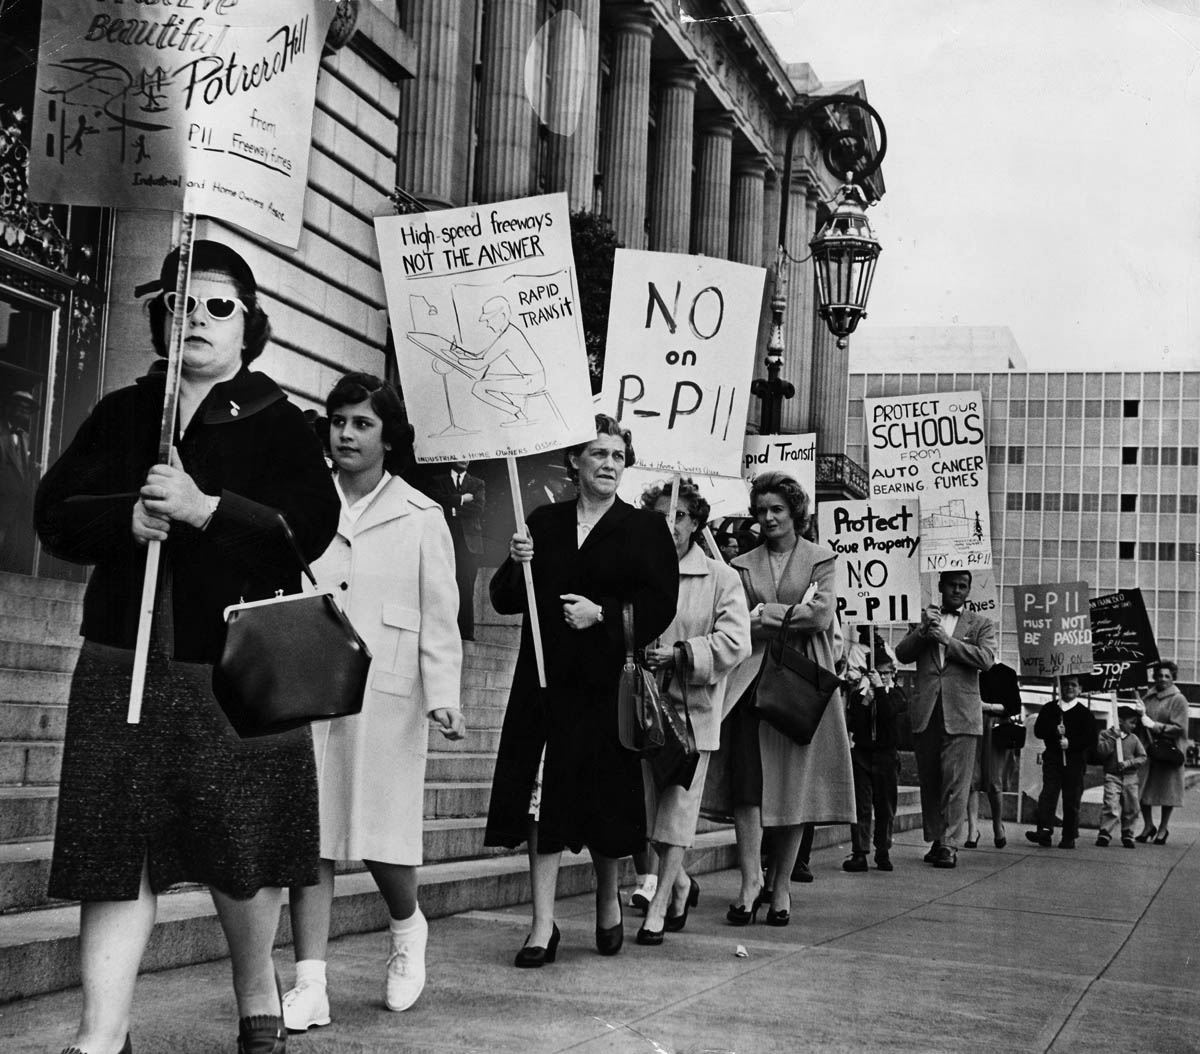 Residents protesting the Southern Freeway project at San Francisco's City Hall in the late 1950s. Via the San Francisco History Center, San Francisco Public Library.